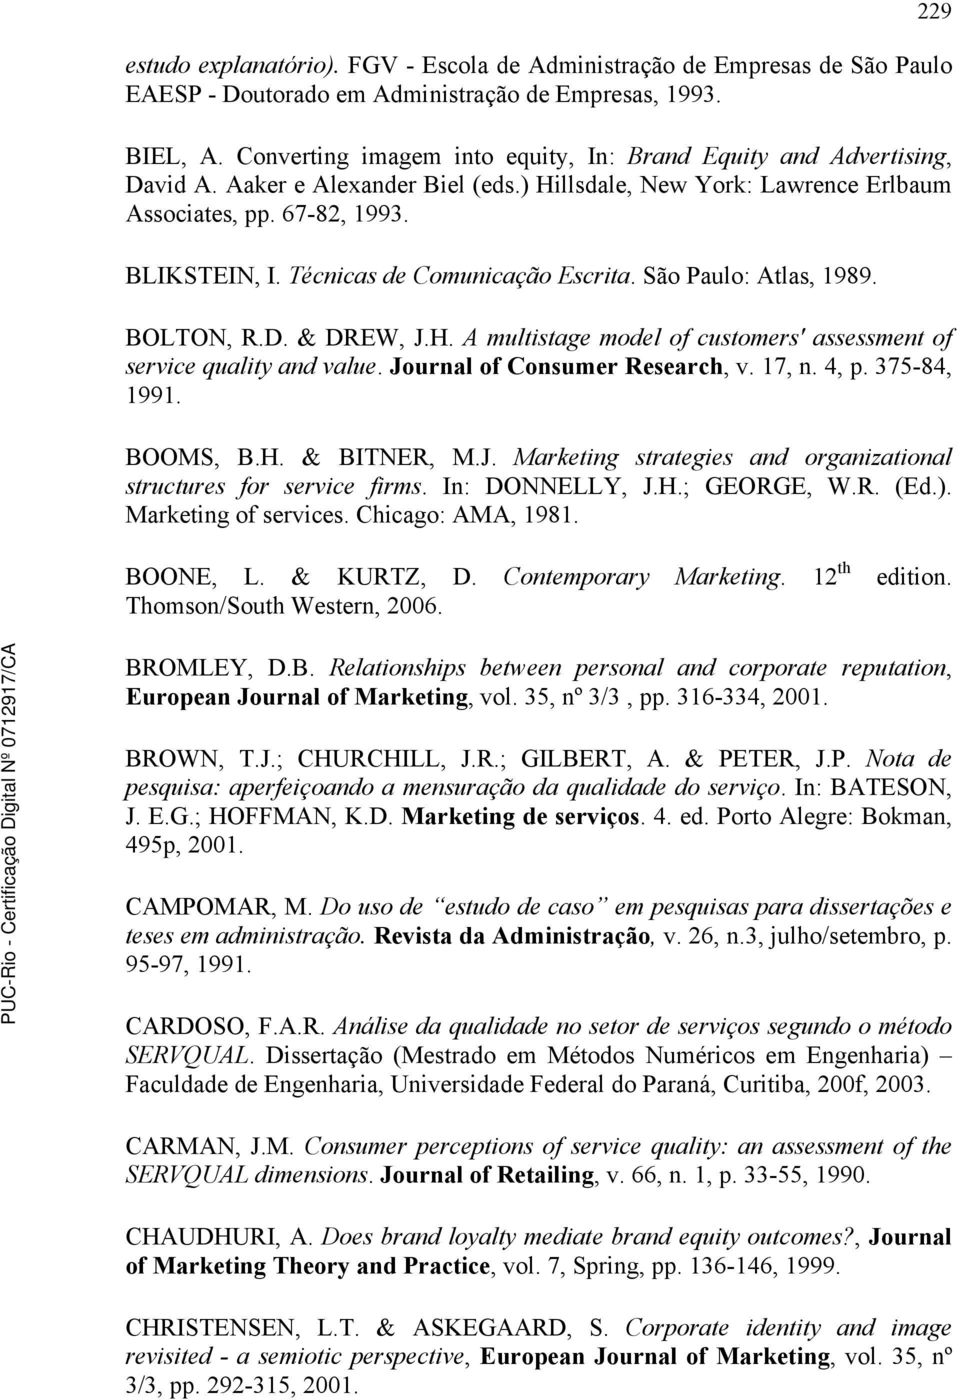 Técnicas de Comunicação Escrita. São Paulo: Atlas, 1989. BOLTON, R.D. & DREW, J.H. A multistage model of customers' assessment of service quality and value. Journal of Consumer Research, v. 17, n.